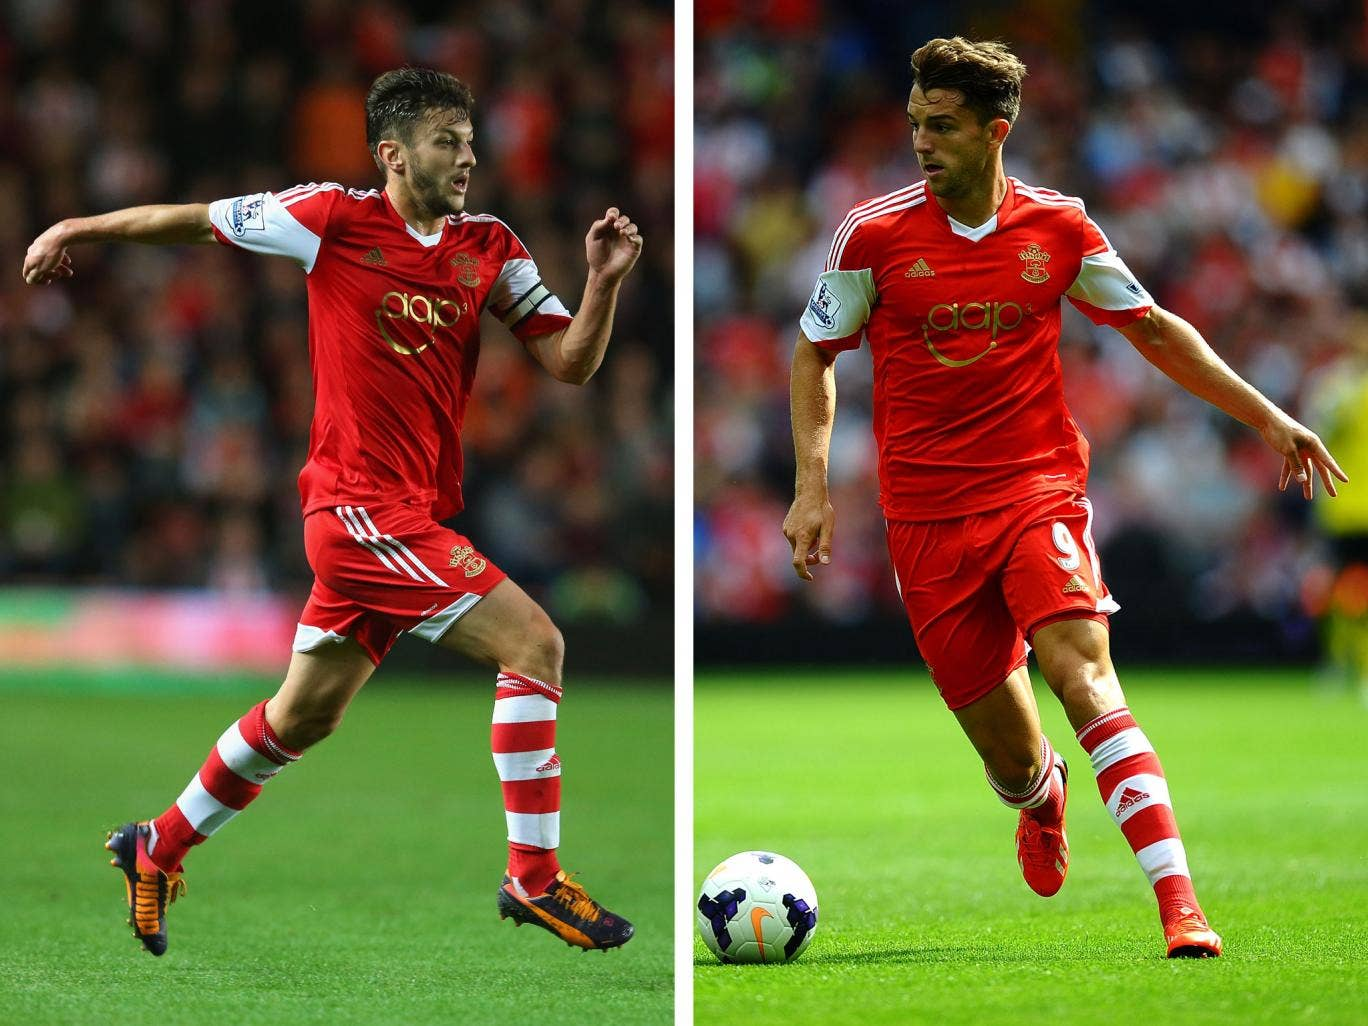 Southampton duo Adam Lallana and Jay Rodriguez have received a call-up to the England squad for the friendlies against Chile and Germany